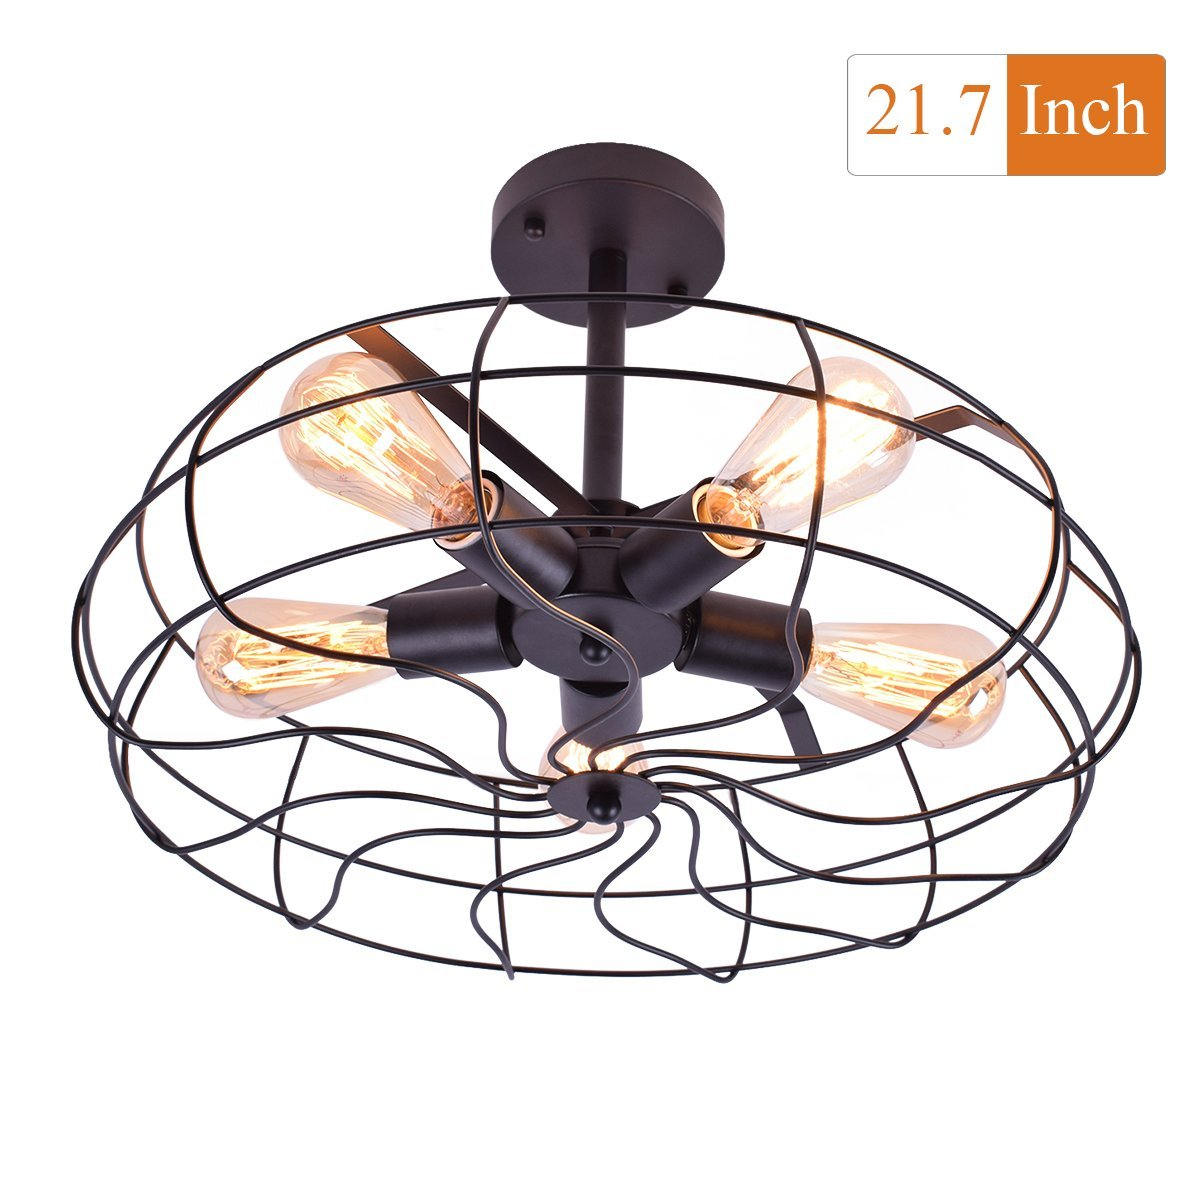 Lingkai Retro Industrial Vintage style Semi Flush Mount Ceiling Light Hallway Foyer Hanging Fixture lighting with 5 Lights